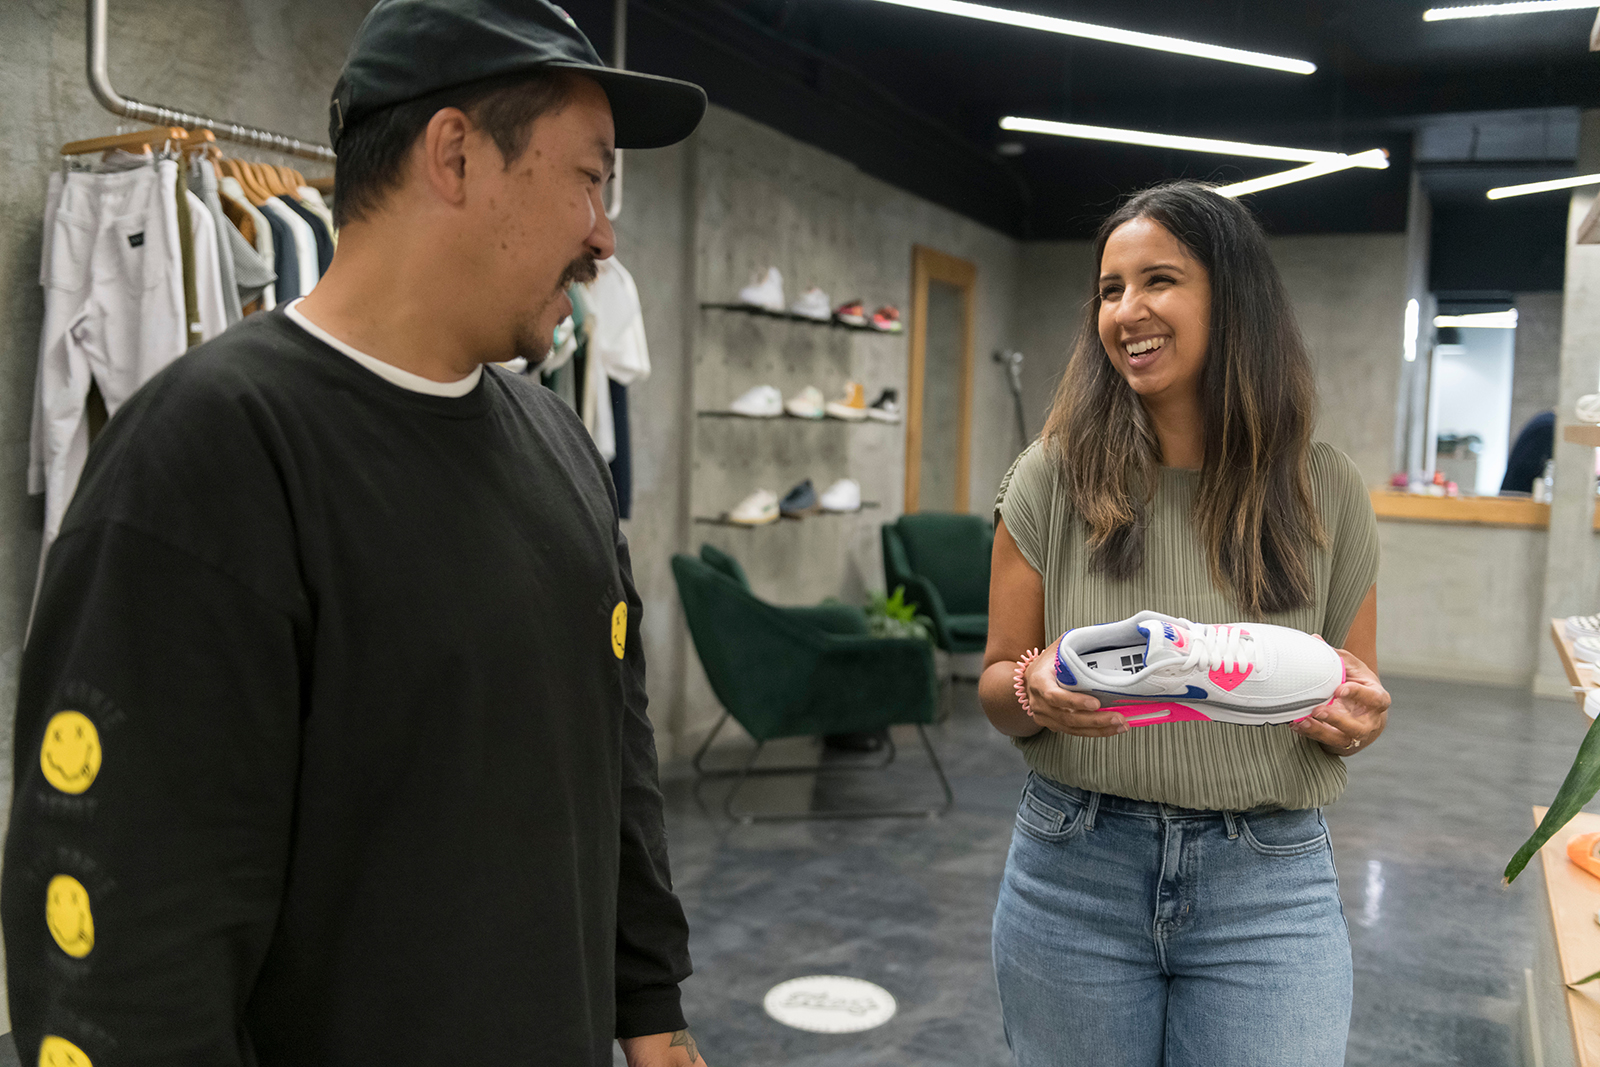 A woman shopping for shoes smiles with a store owner while they talk about the running shoe she's checking out